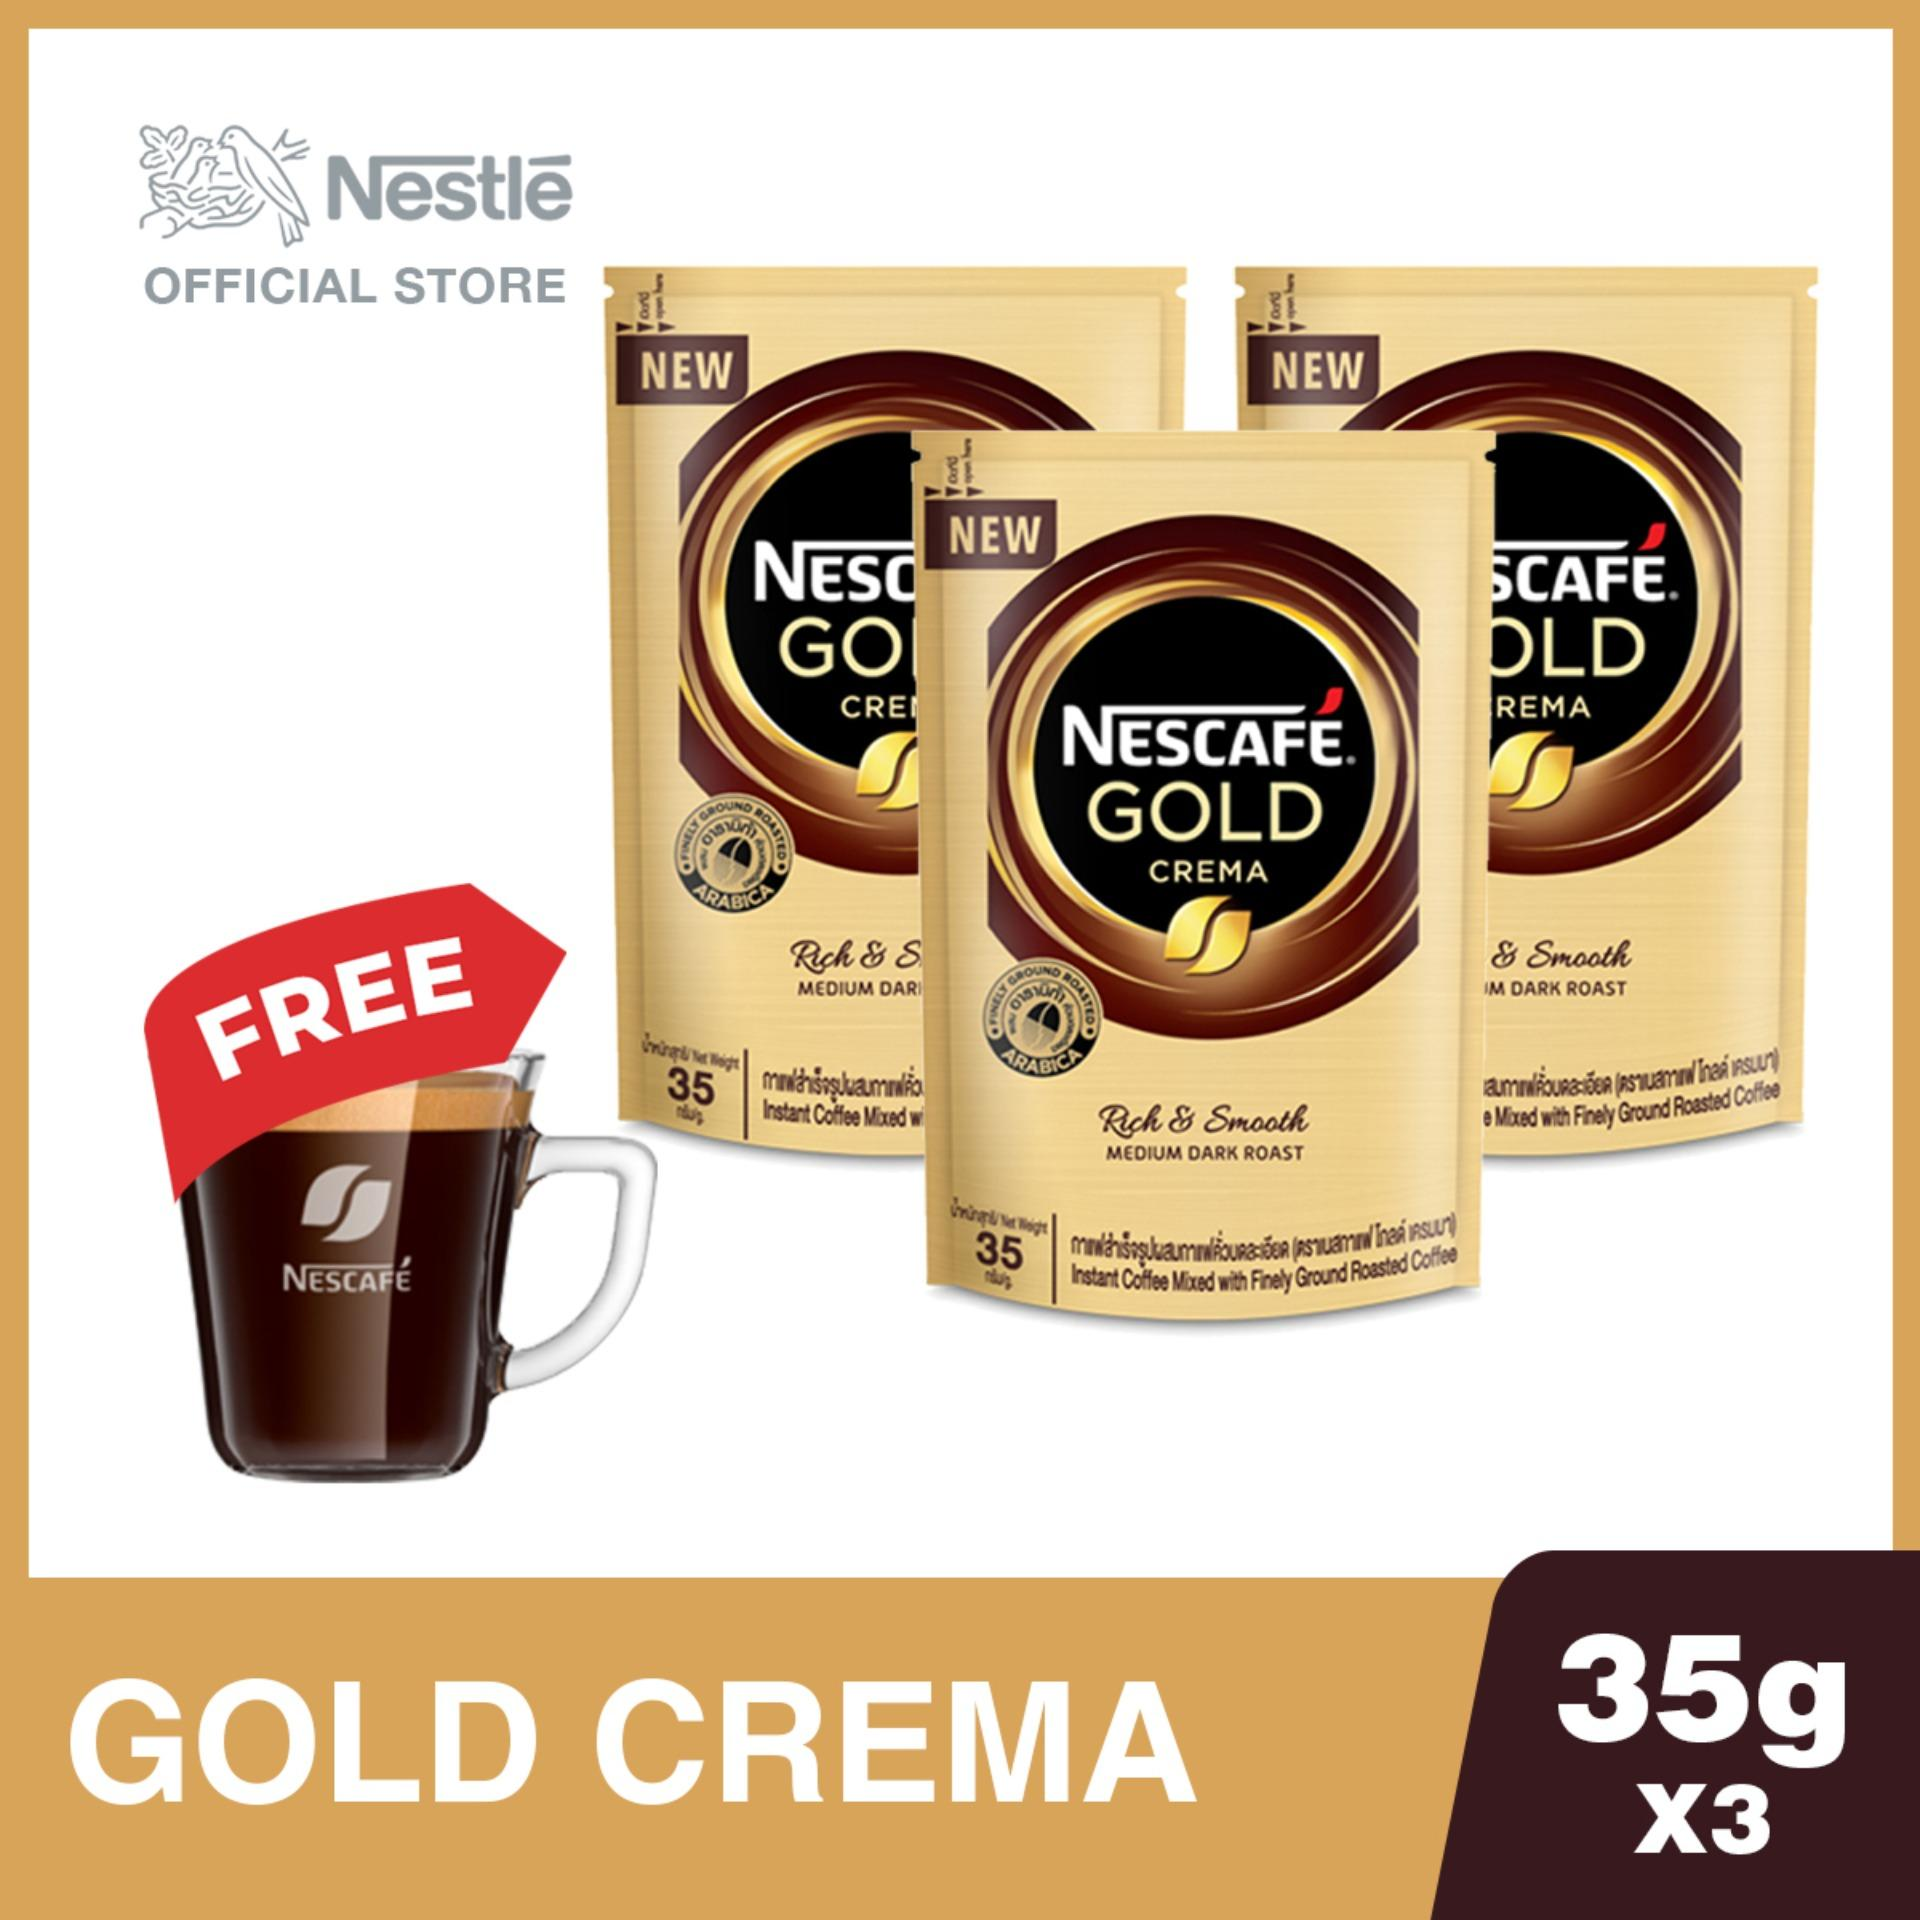 Nescafe Philippines: Nescafe price list - Nescafe Coffee Maker